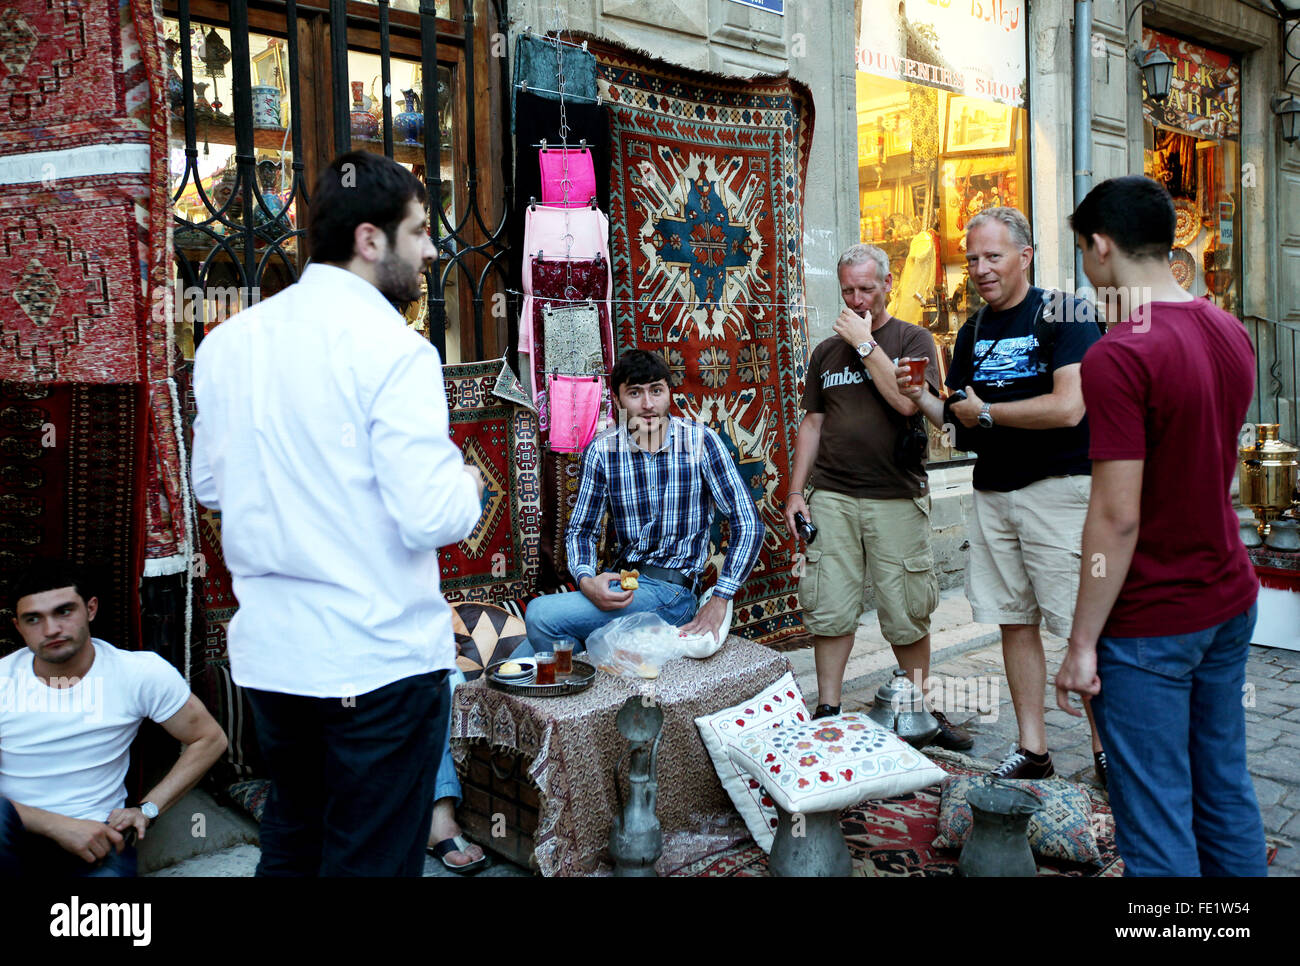 Carpet shop in the city of Baku, Azerbaijan - Stock Image